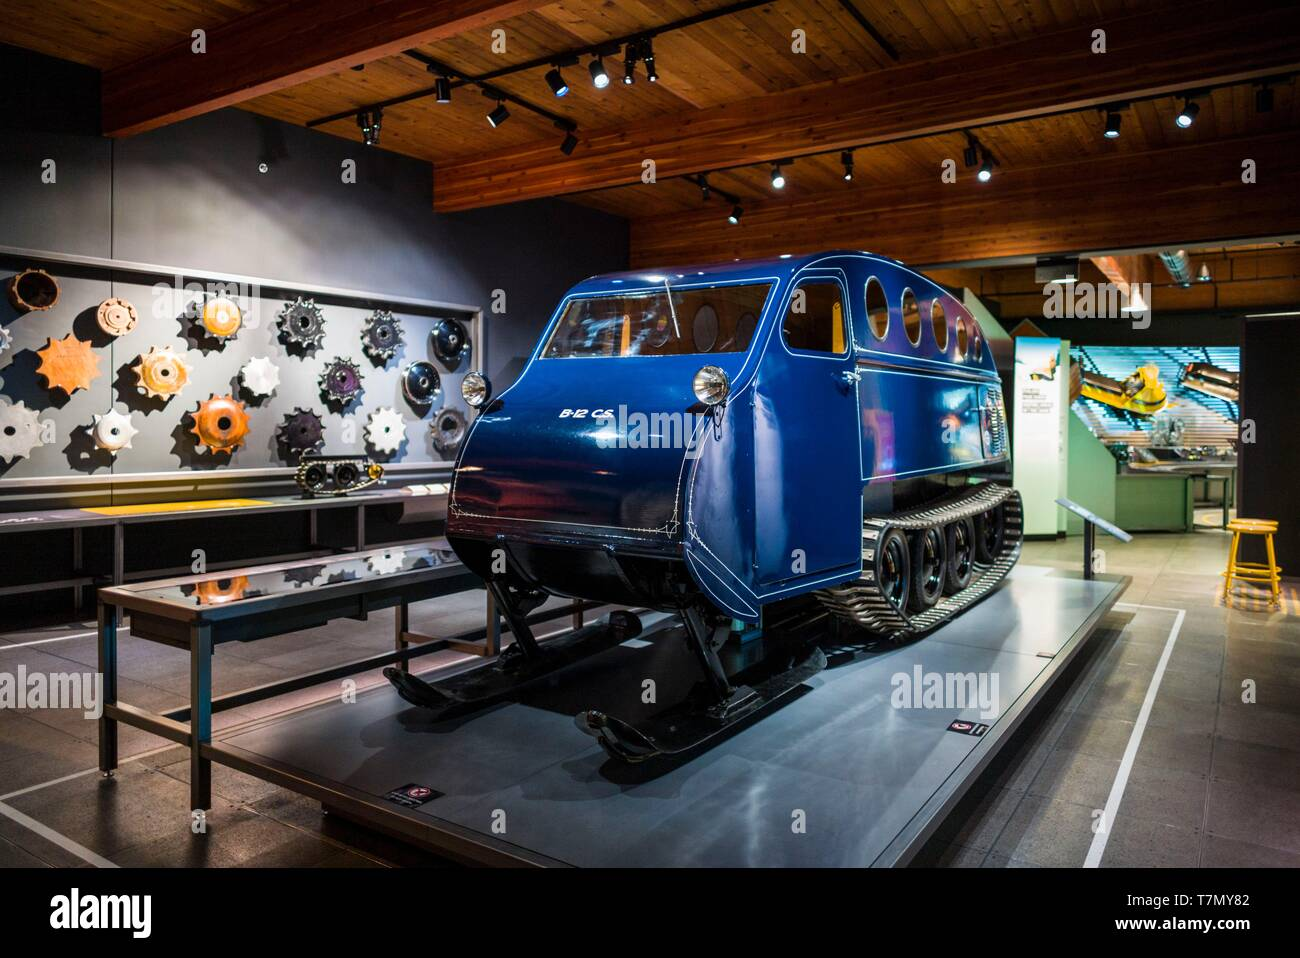 Canada, Quebec, Estrie Region, Valcourt, Musee J Armand Bombardier, museum dedicated to the inventor of the modern snowmobile, early snowmobile prototype - Stock Image